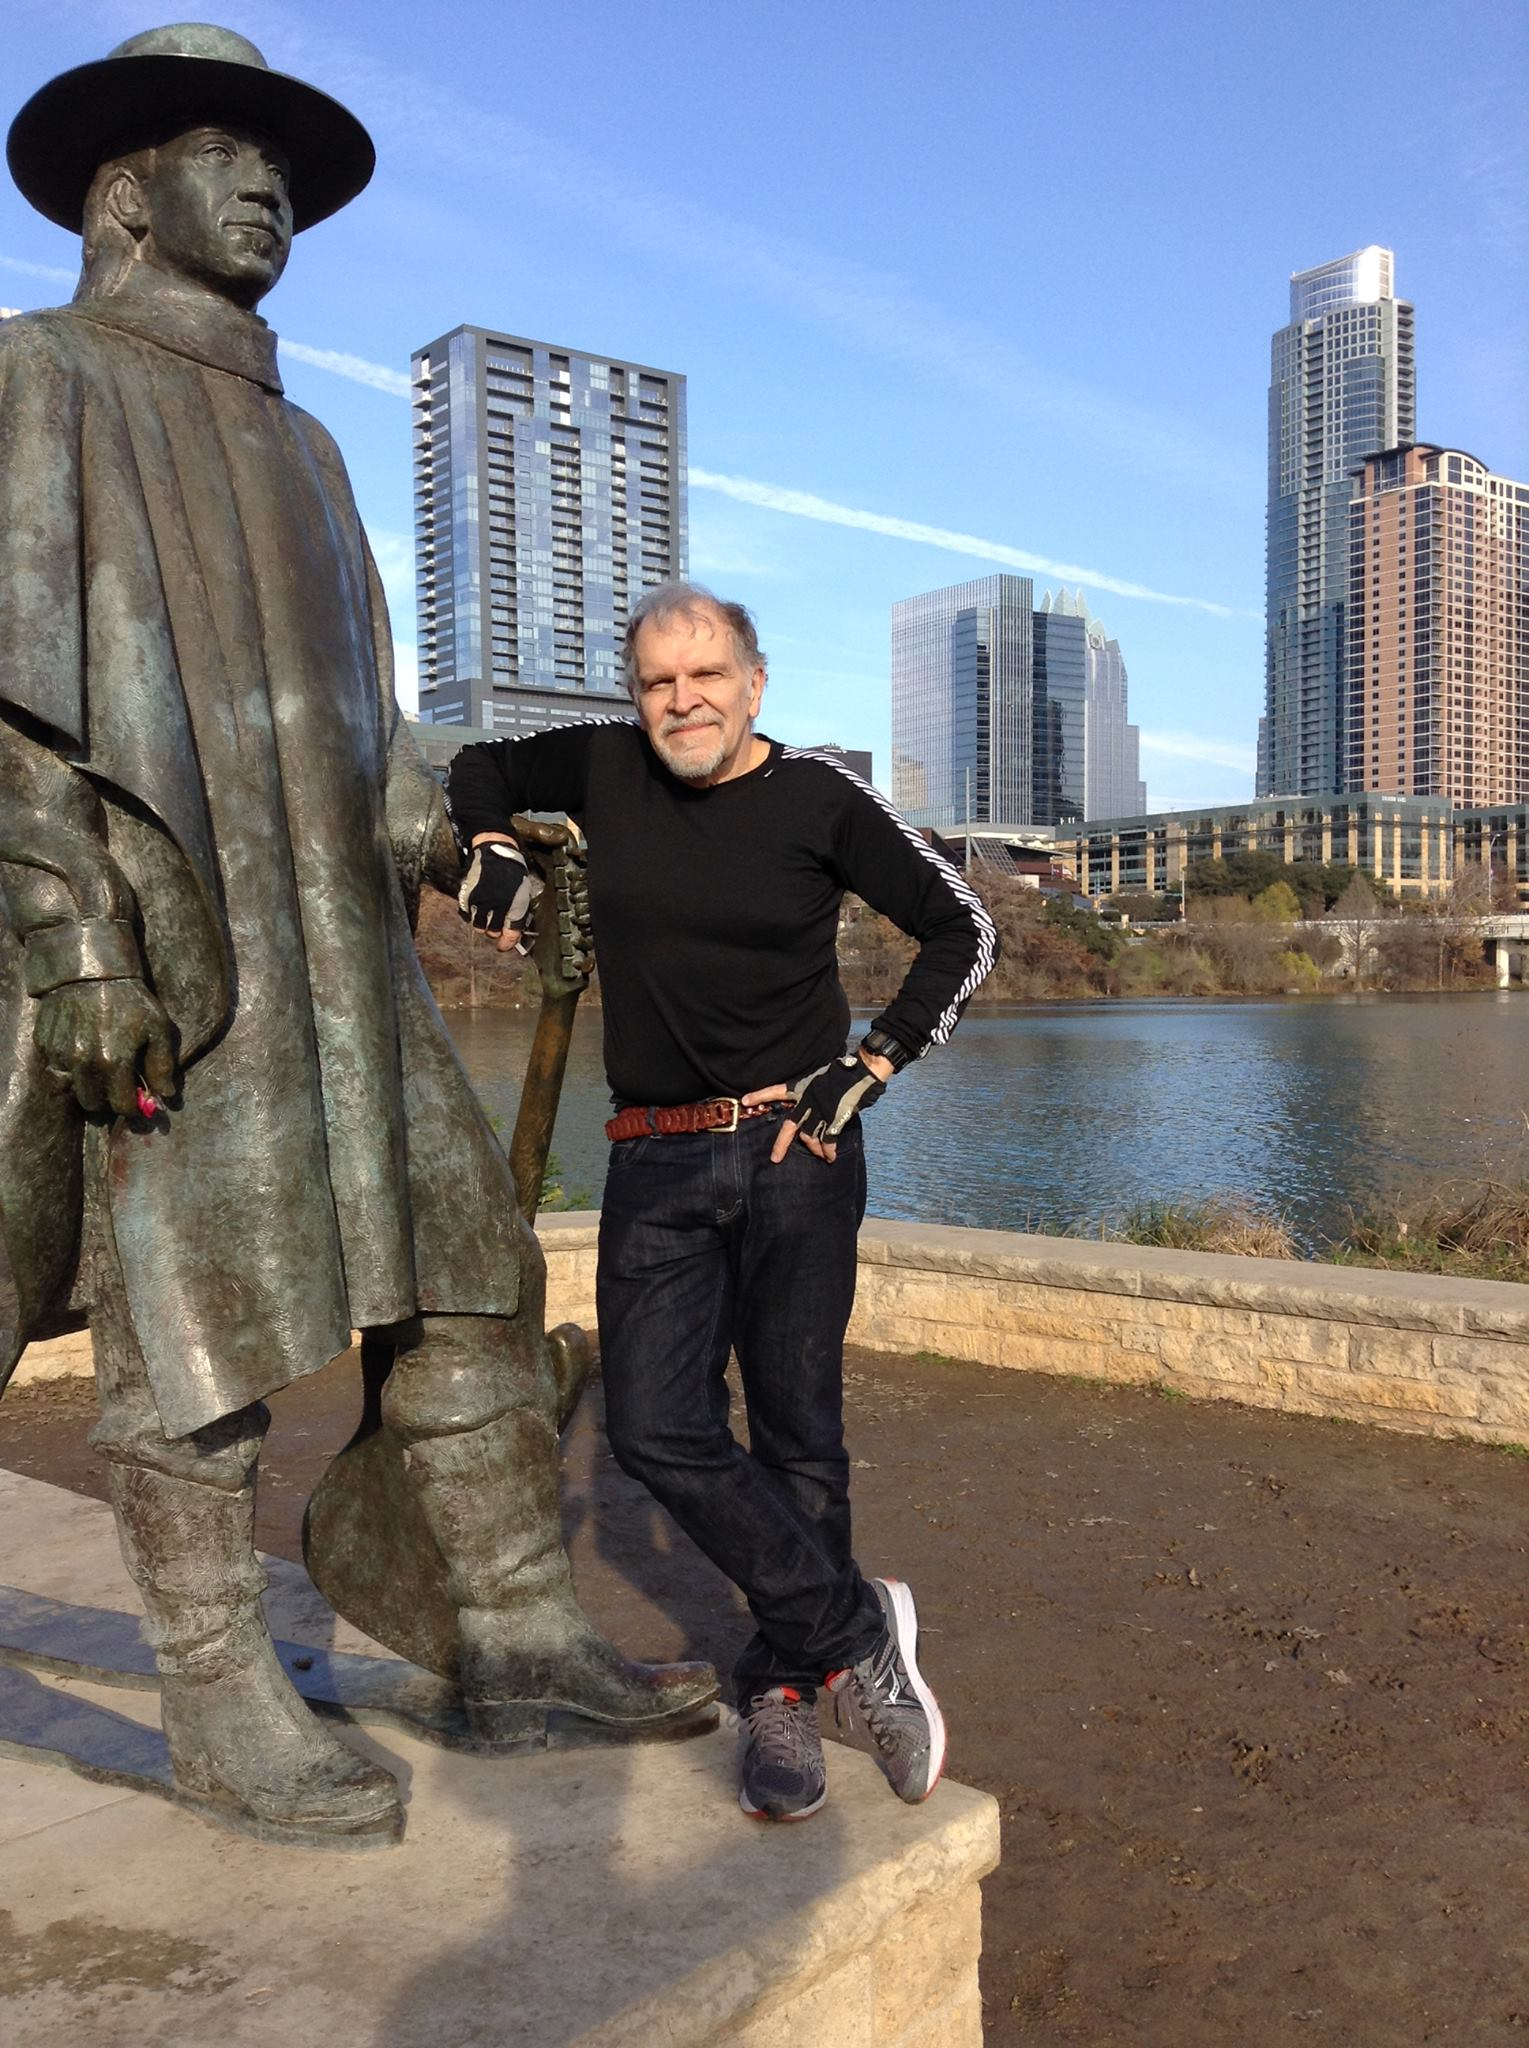 Austin city limits. That's me and Stevie on the banks of the Colorado River